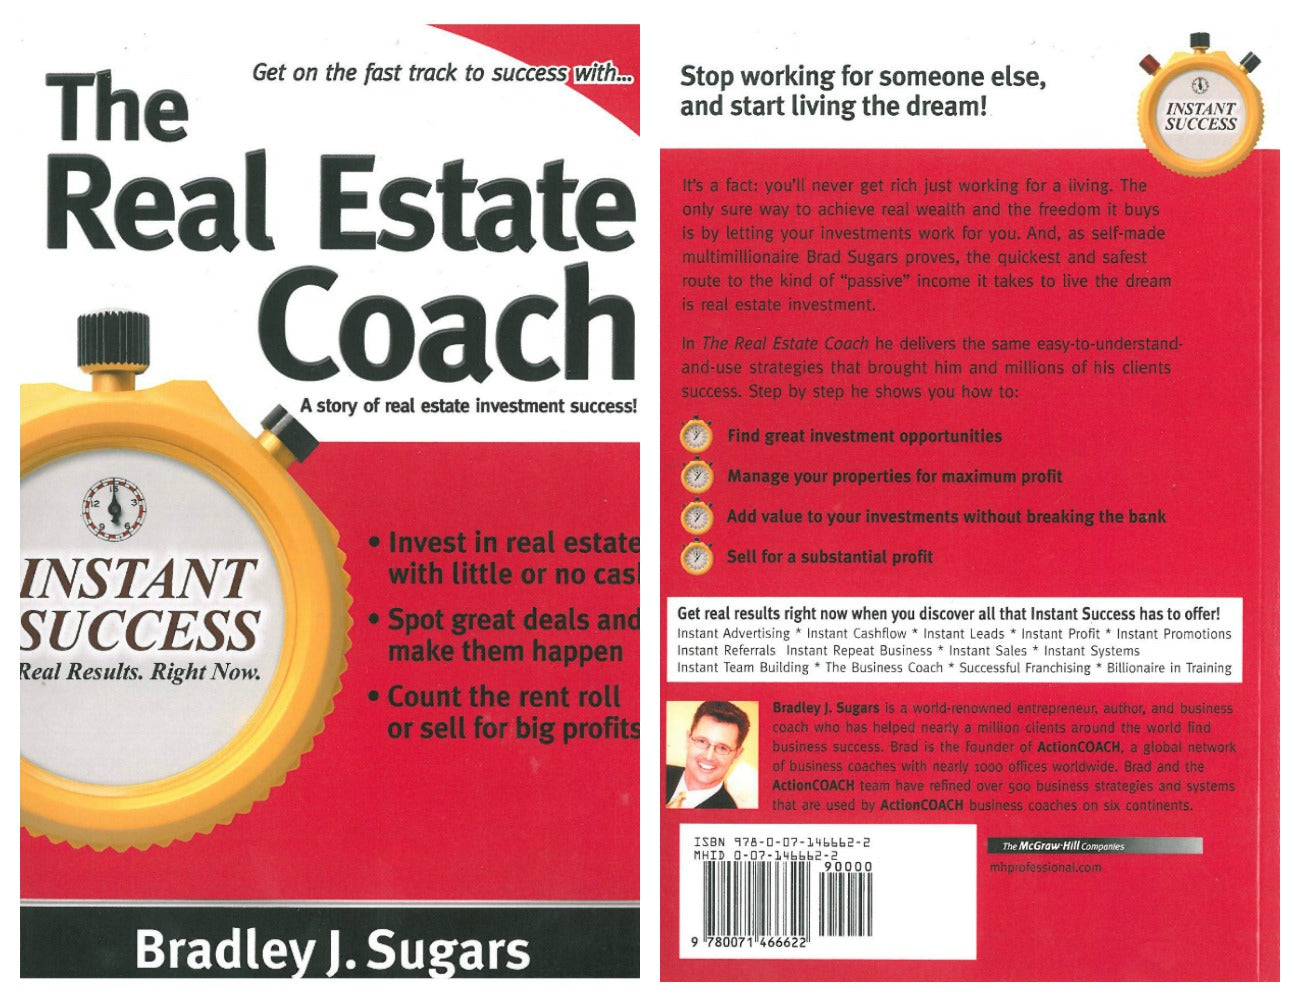 The Real Estate Coach